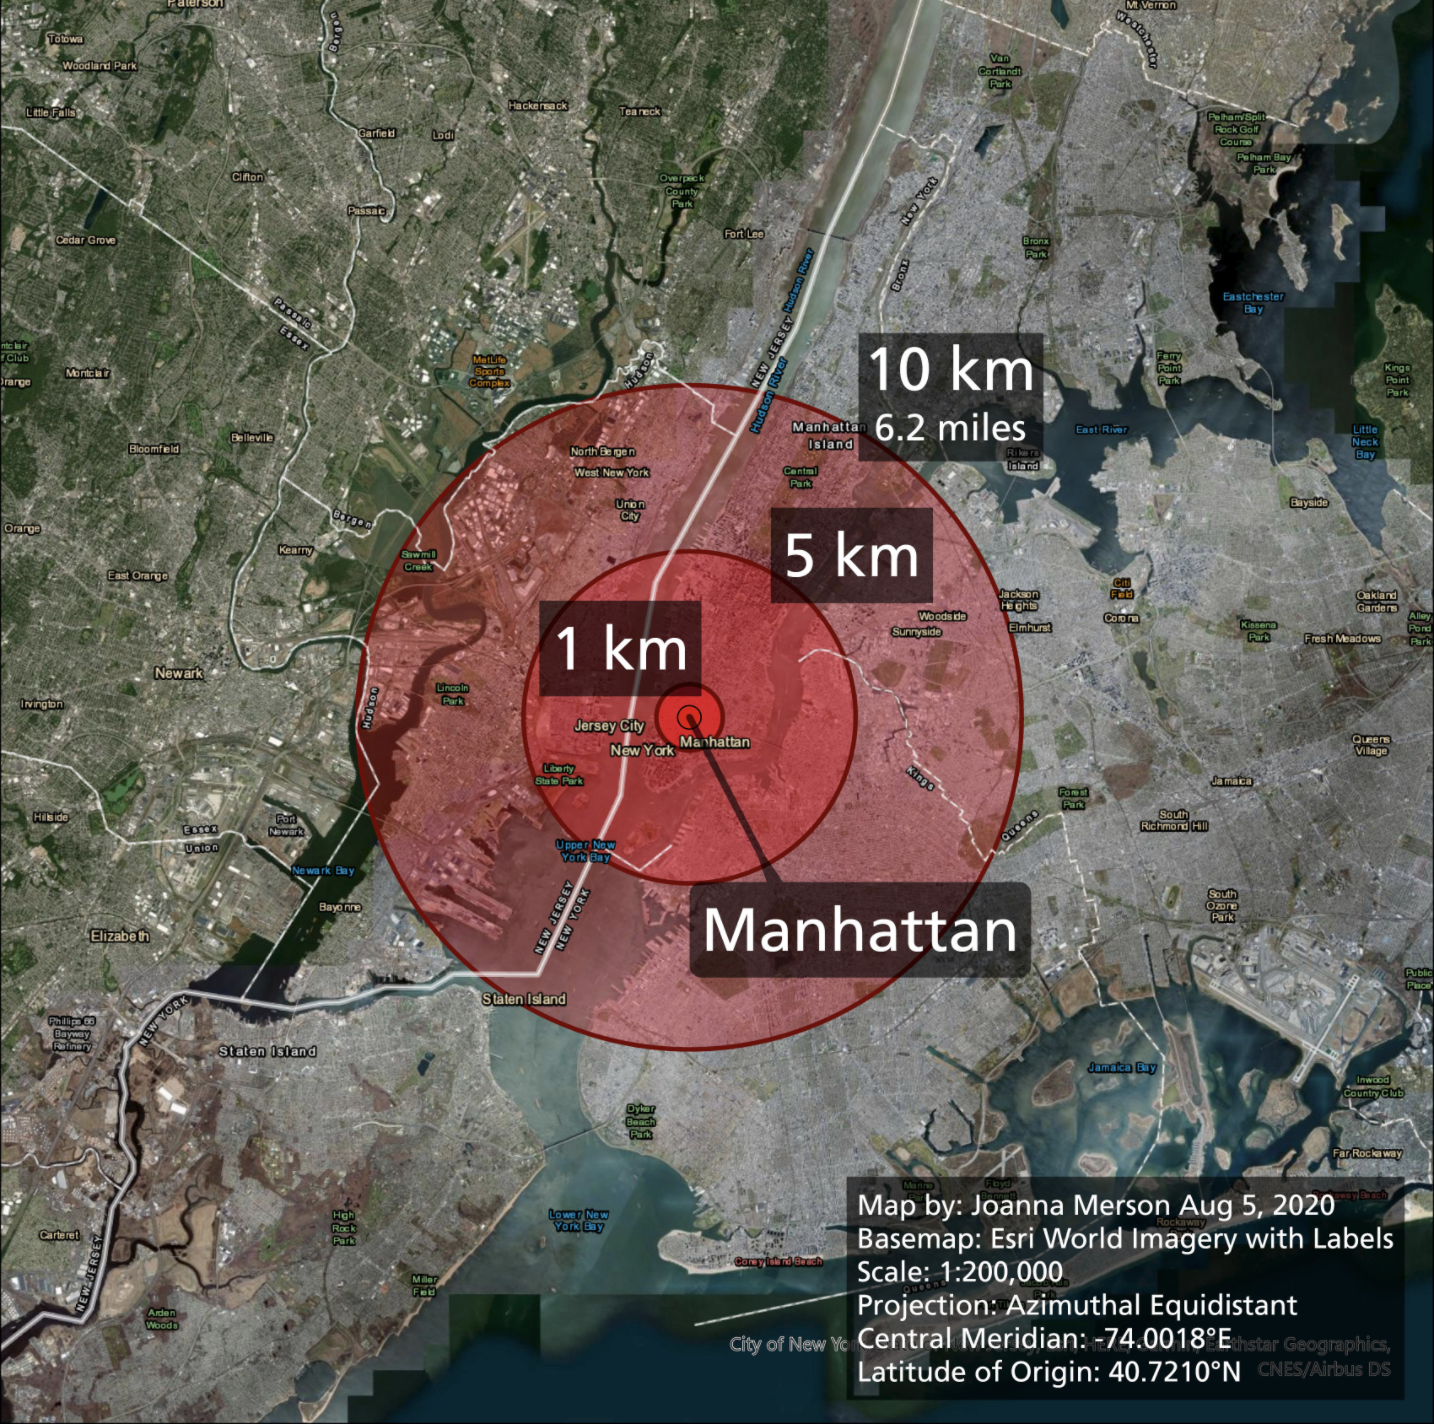 Screenshot of a map visualization by Joanna Merson made on August 5 2020, with a basemap from esri World Imagery using a scale 1:200,000 and the Azimuthal Equidistant projection. Map is centered over New York City with an epicenter of Manhattan labeled and circle radii of 1km, 5km, and 10km clearly labeled.